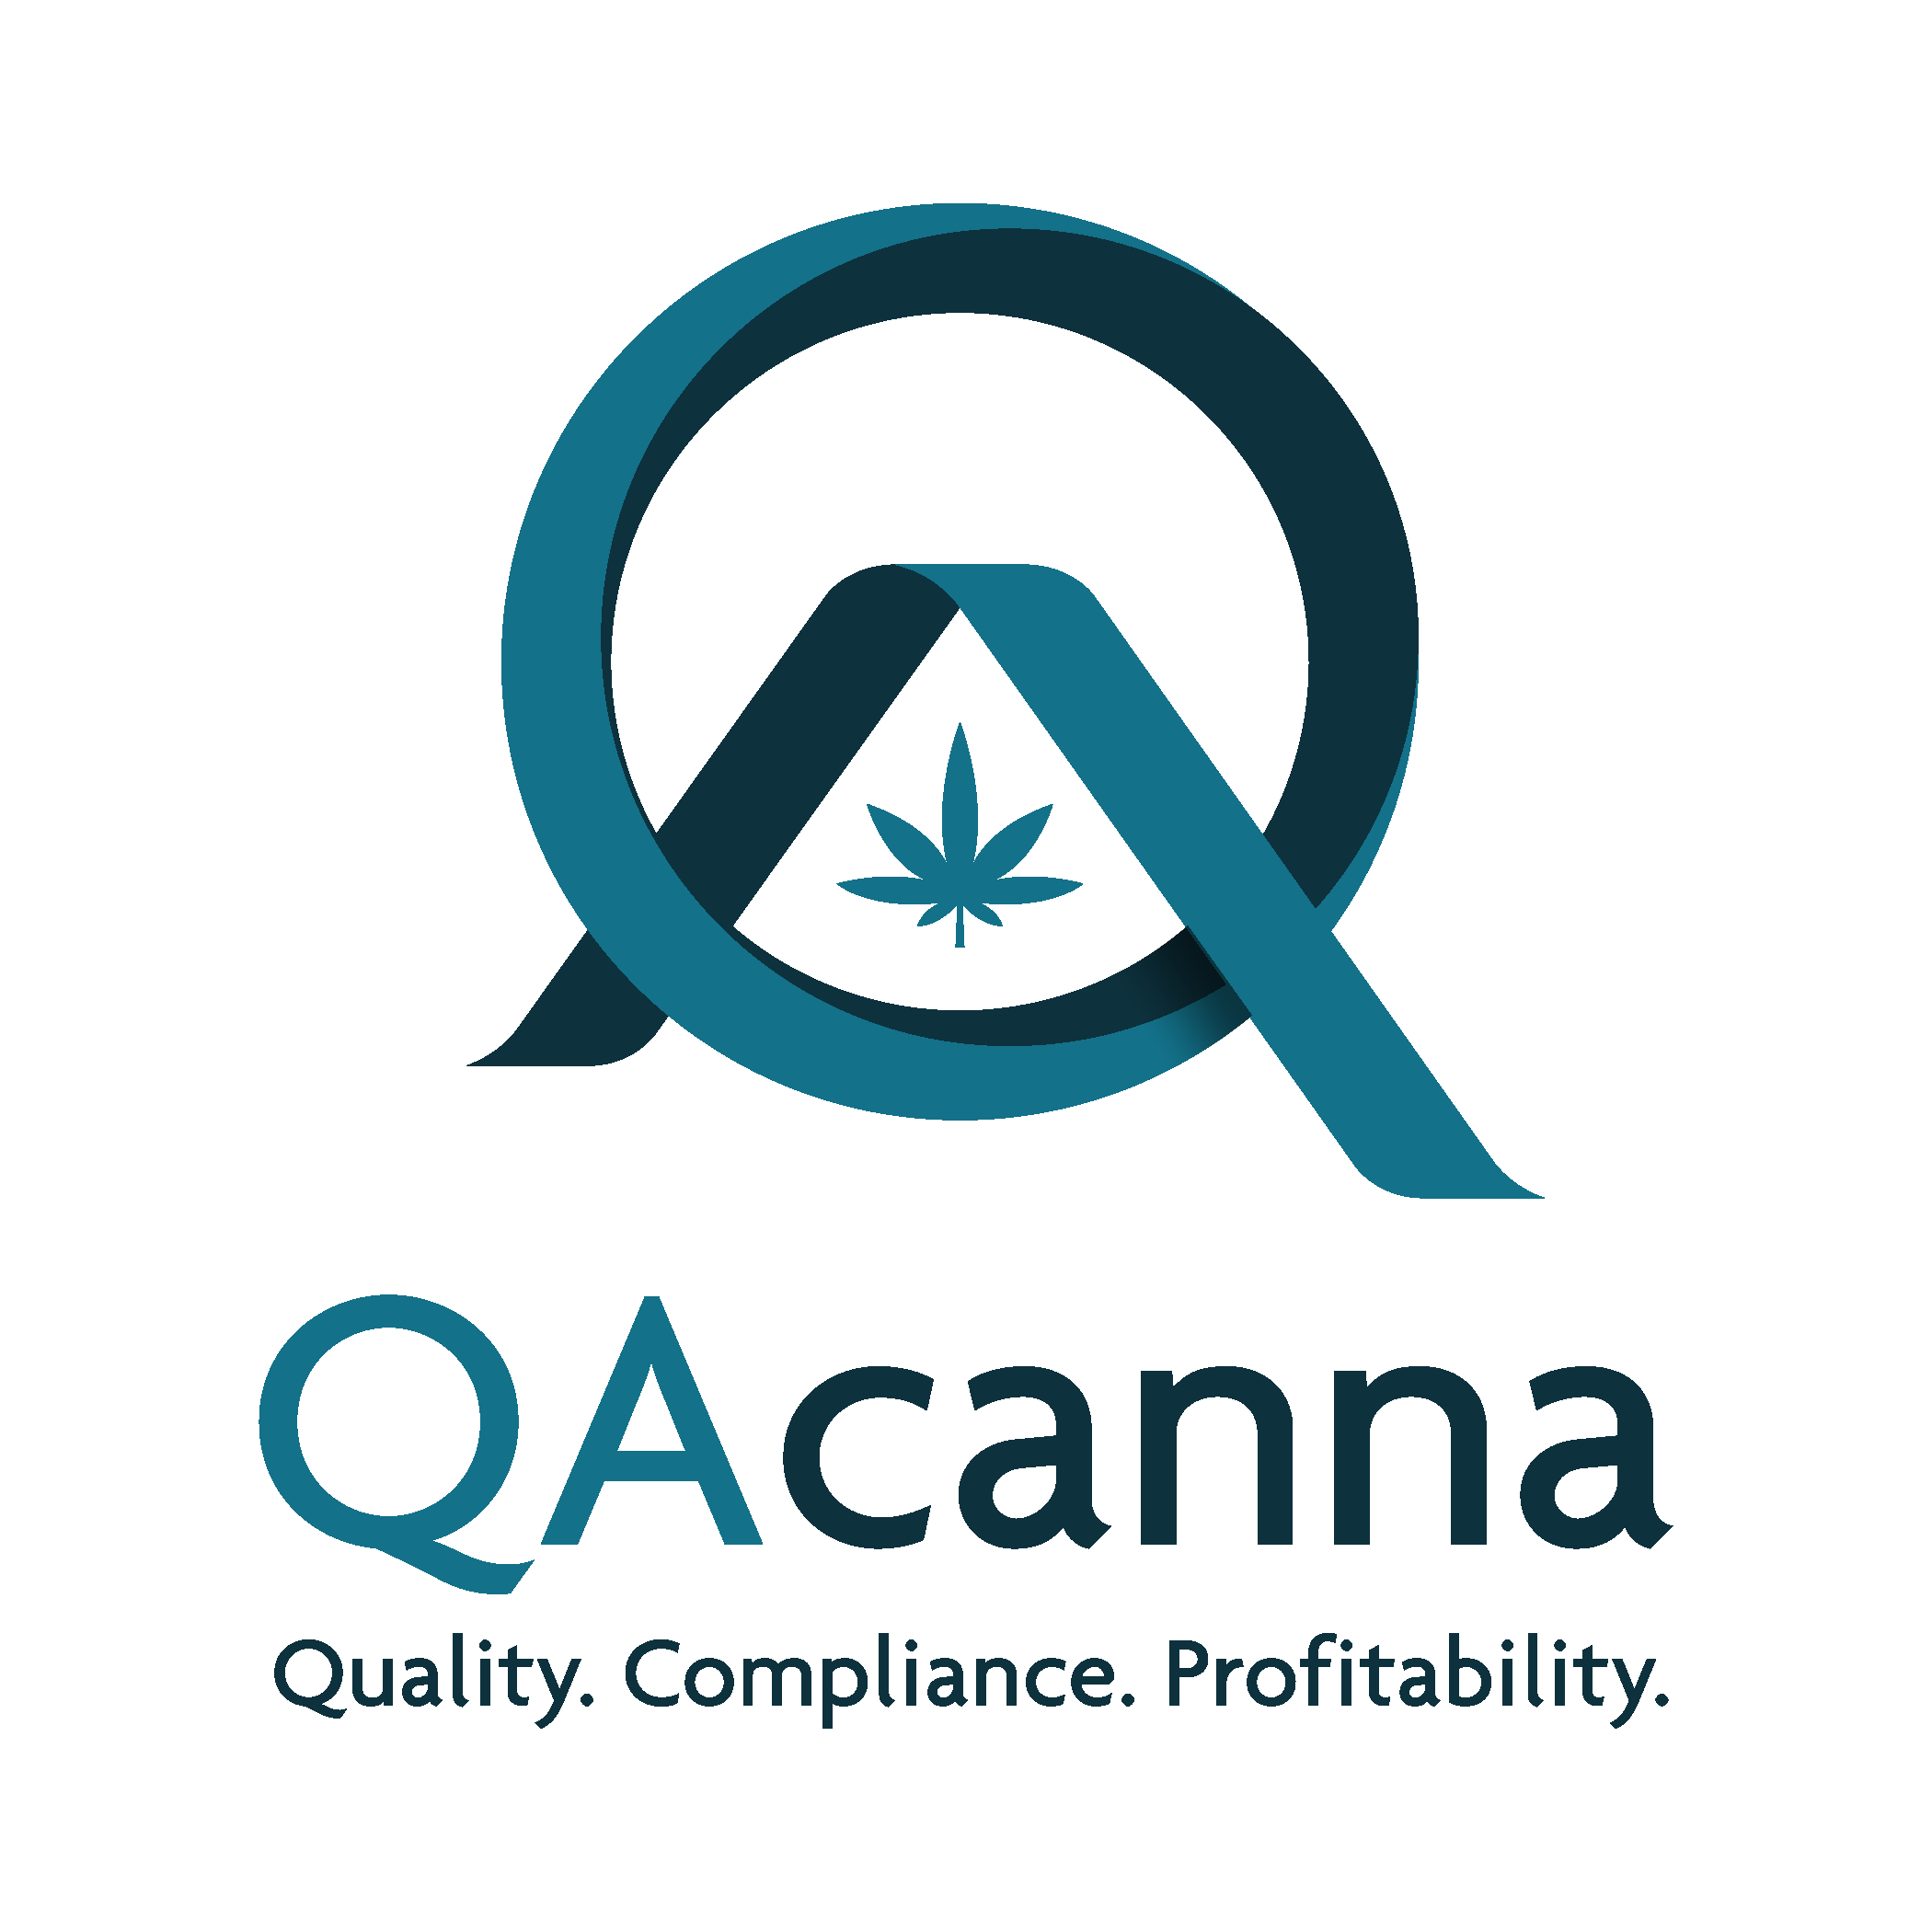 Design a logo for a Quality & Compliance firm in the Cannabis Industry